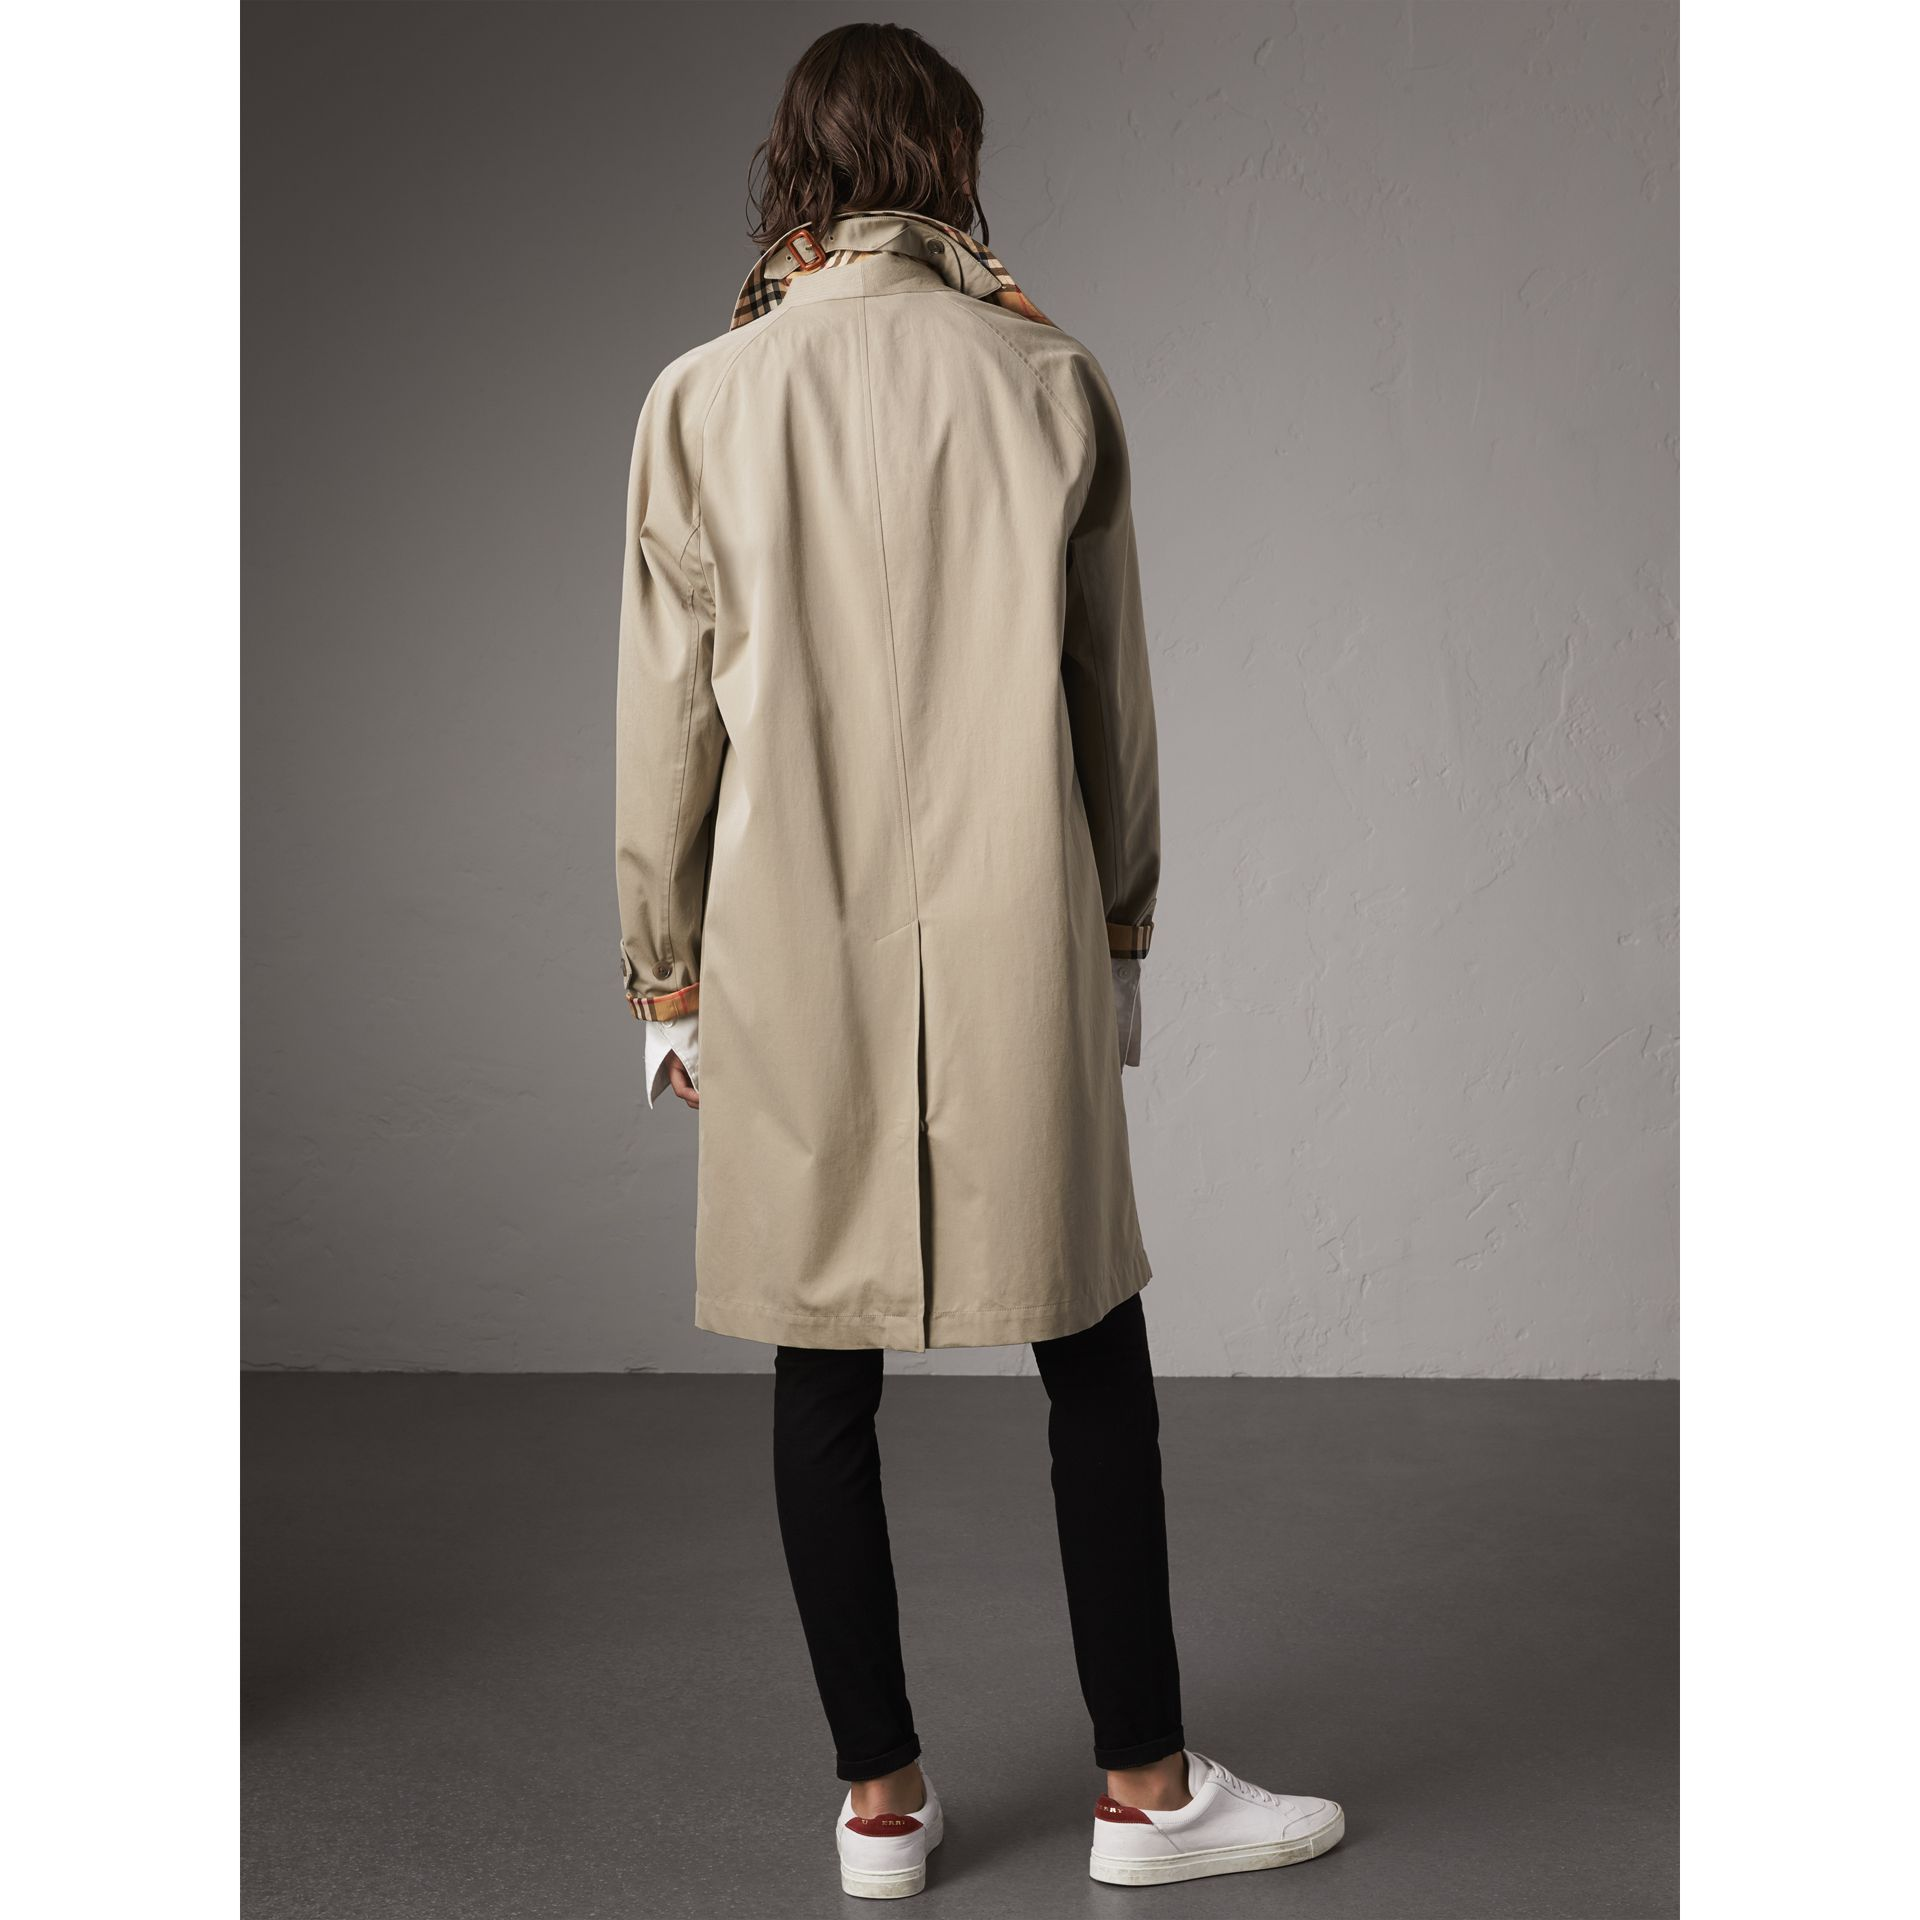 The Camden – Langer Car Coat (Sandsteinfarben) - Damen | Burberry - Galerie-Bild 3